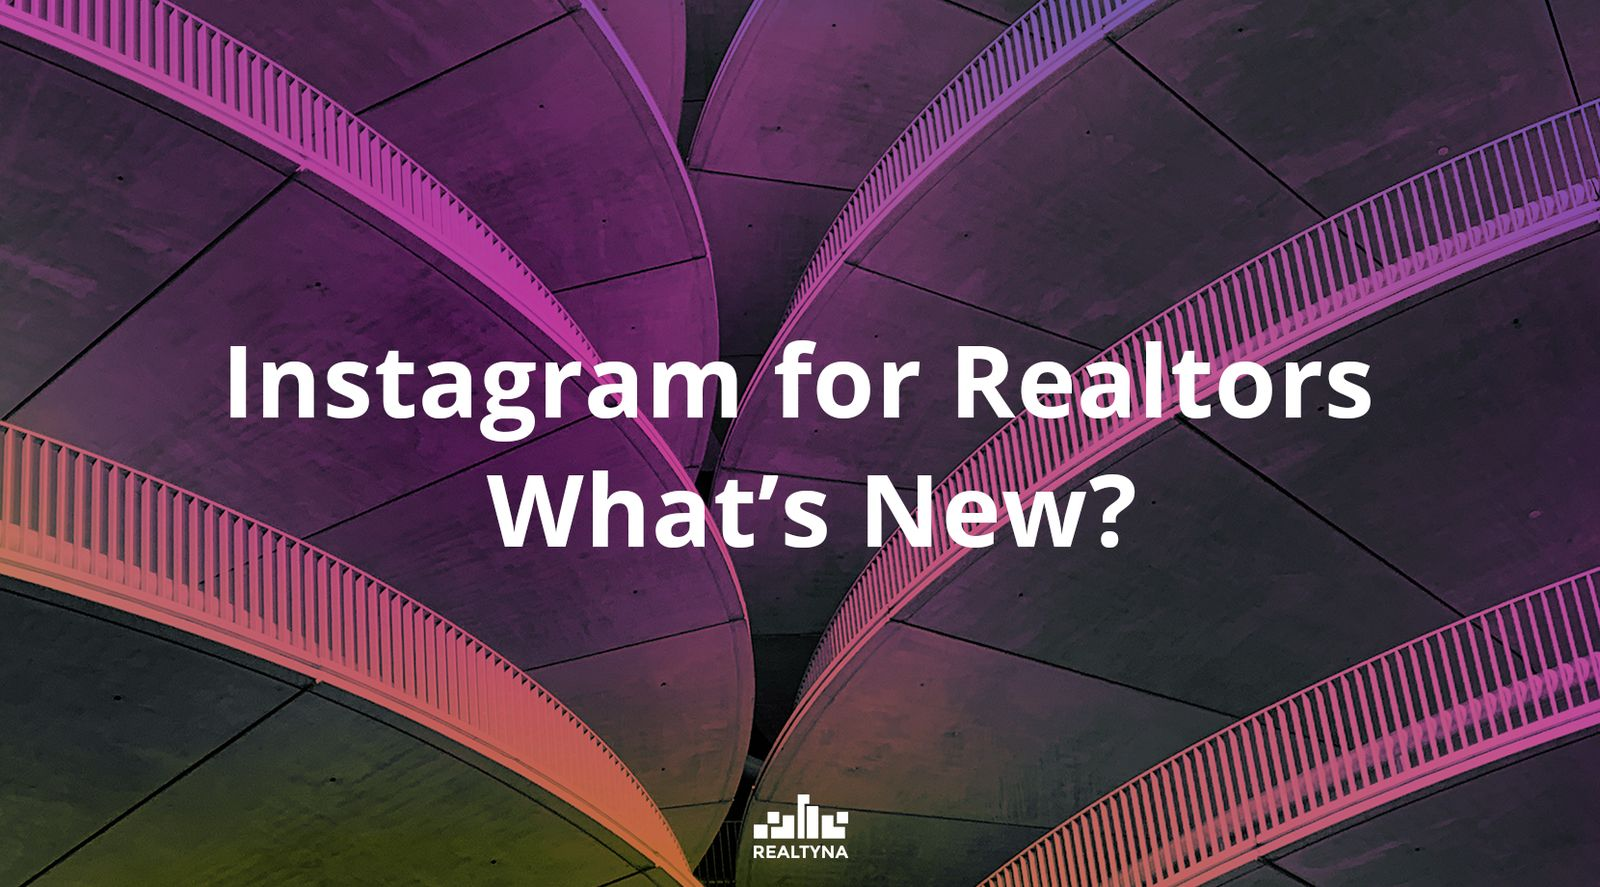 Instagram for Realtors: What's New?